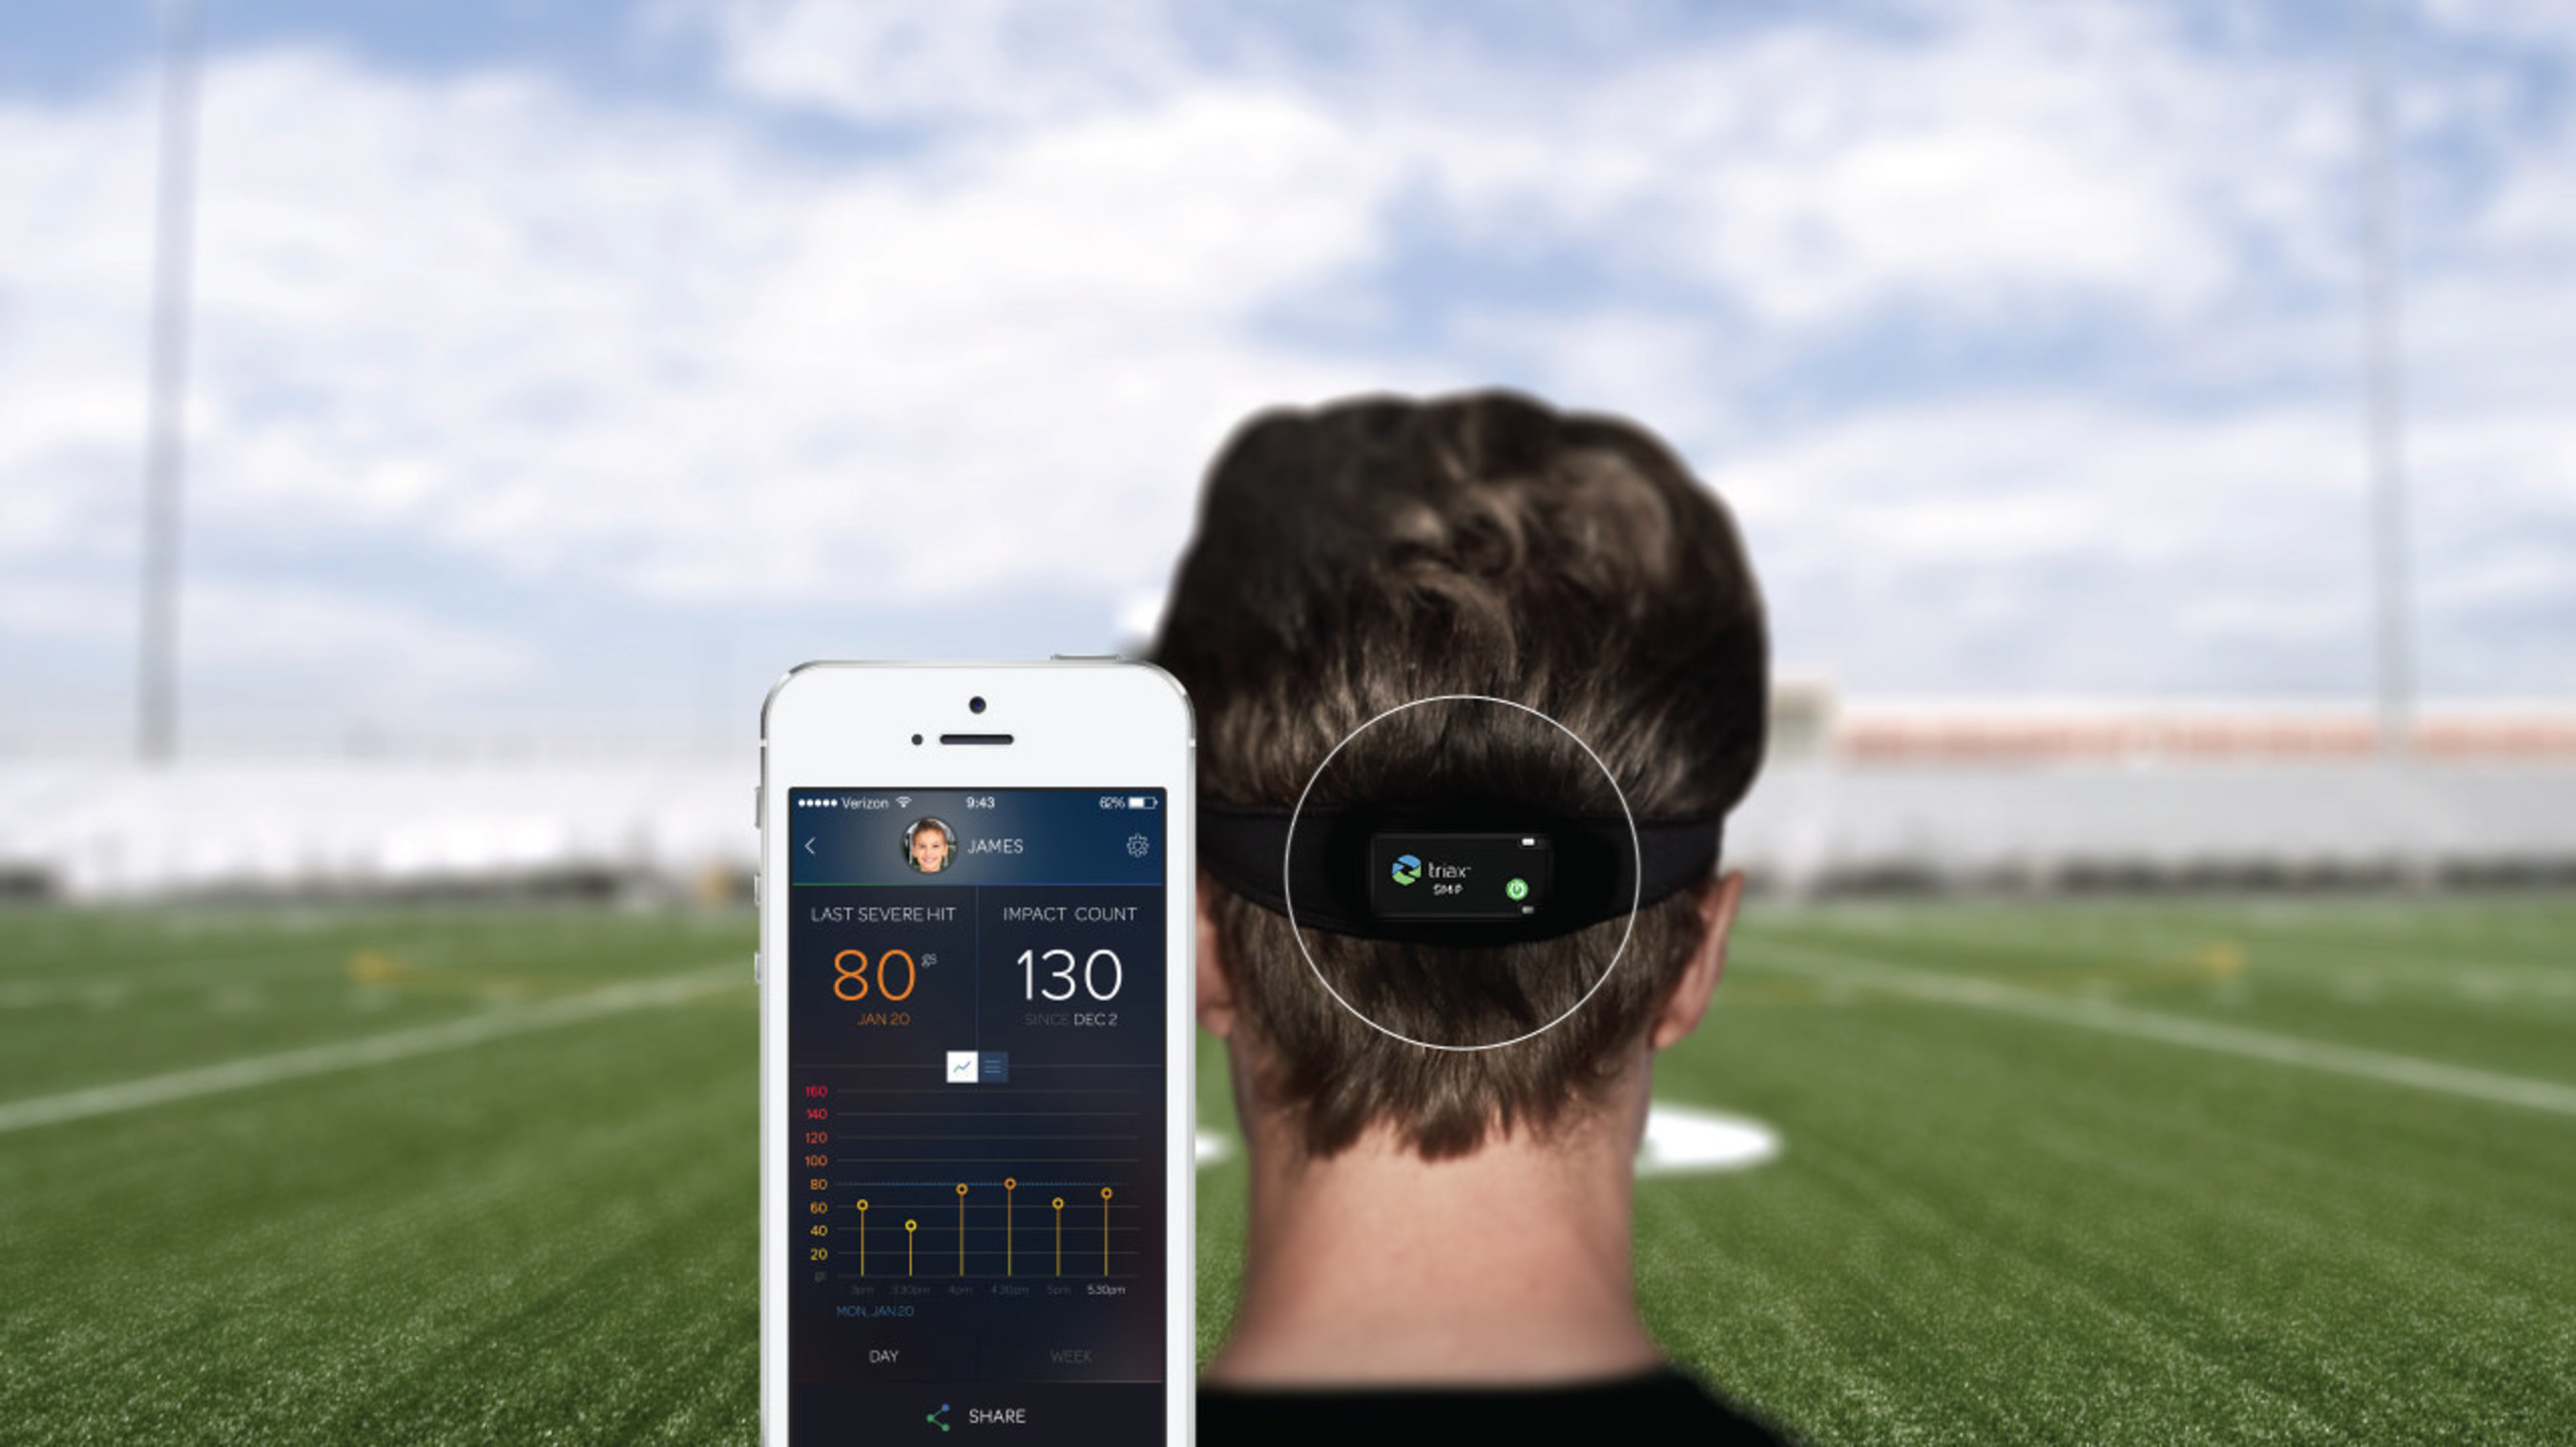 Athletes representing 14 countries will wear Triax Smart Impact Monitors during the 2015 Special Olympics World Games.